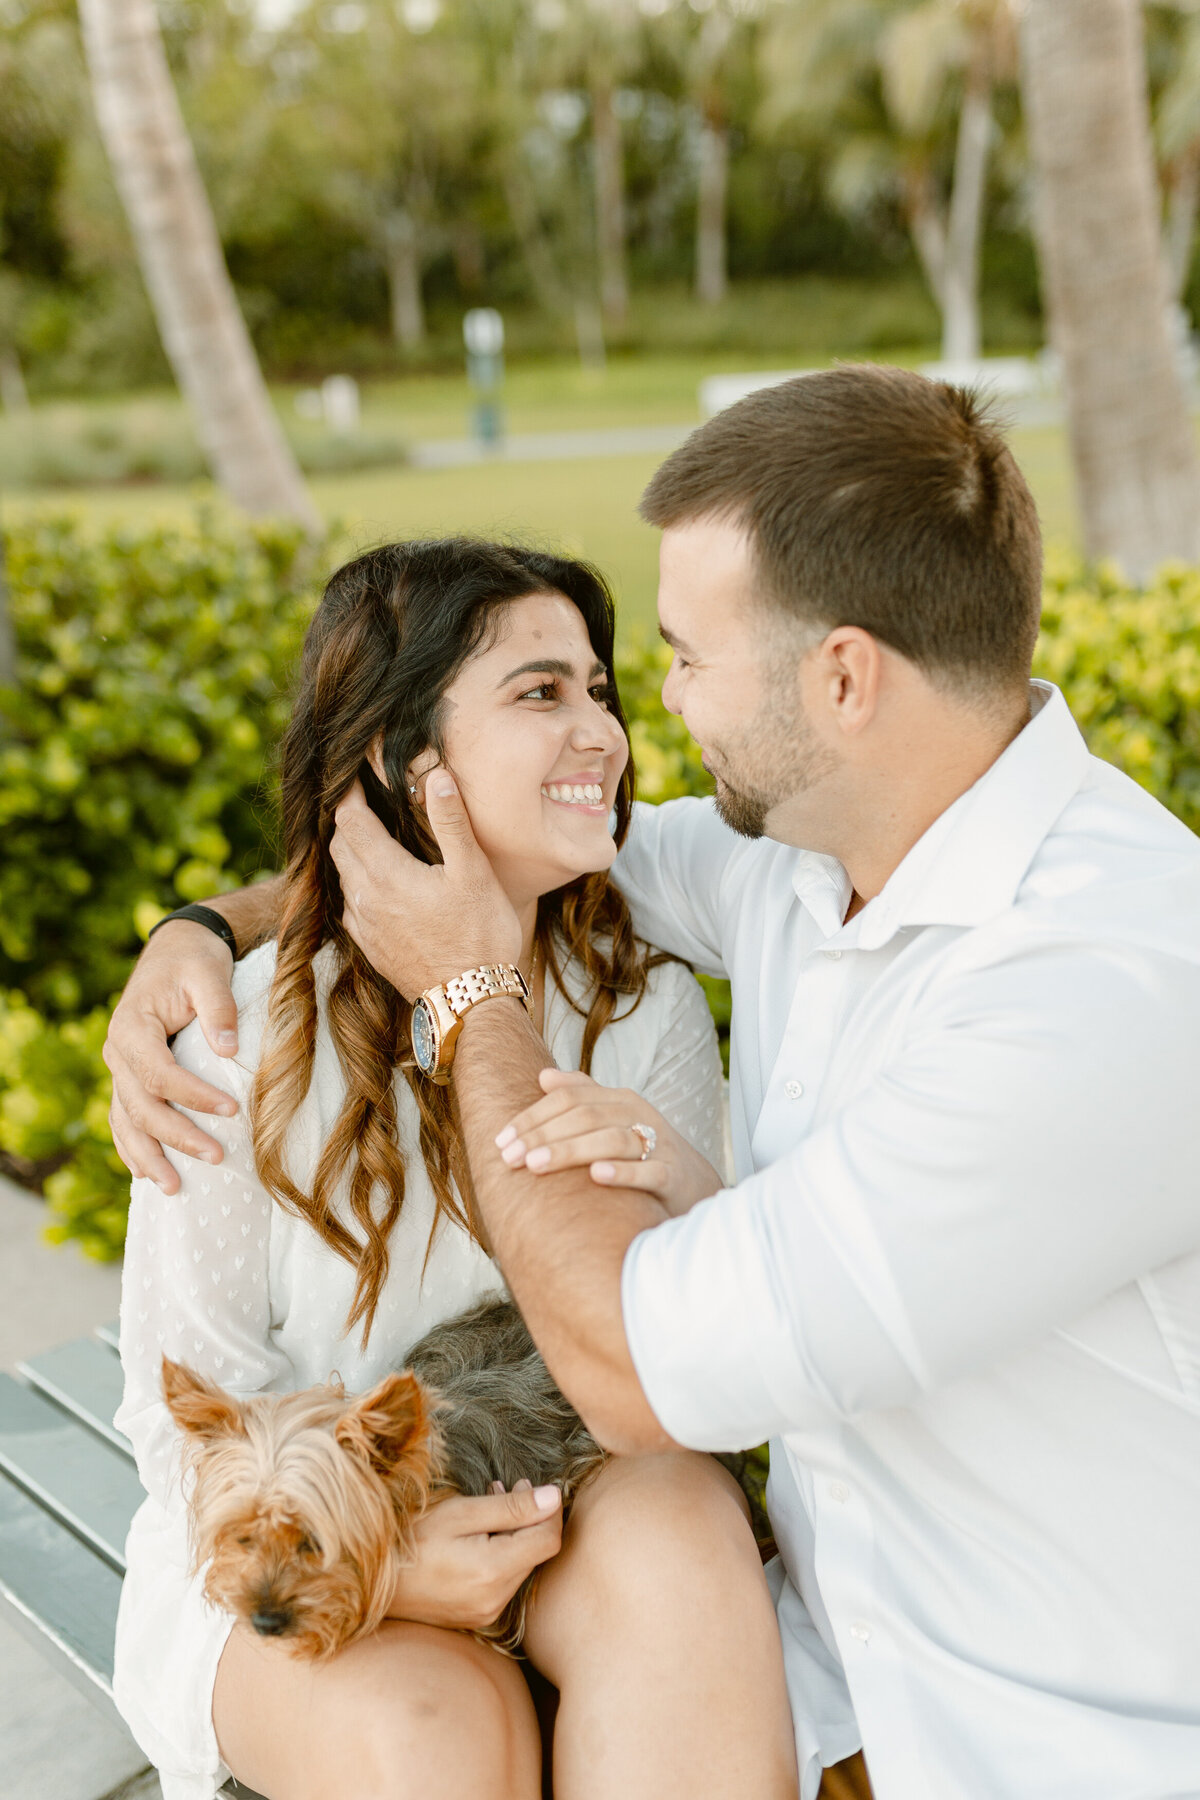 South Pointe Park Engagement Photography Session 7